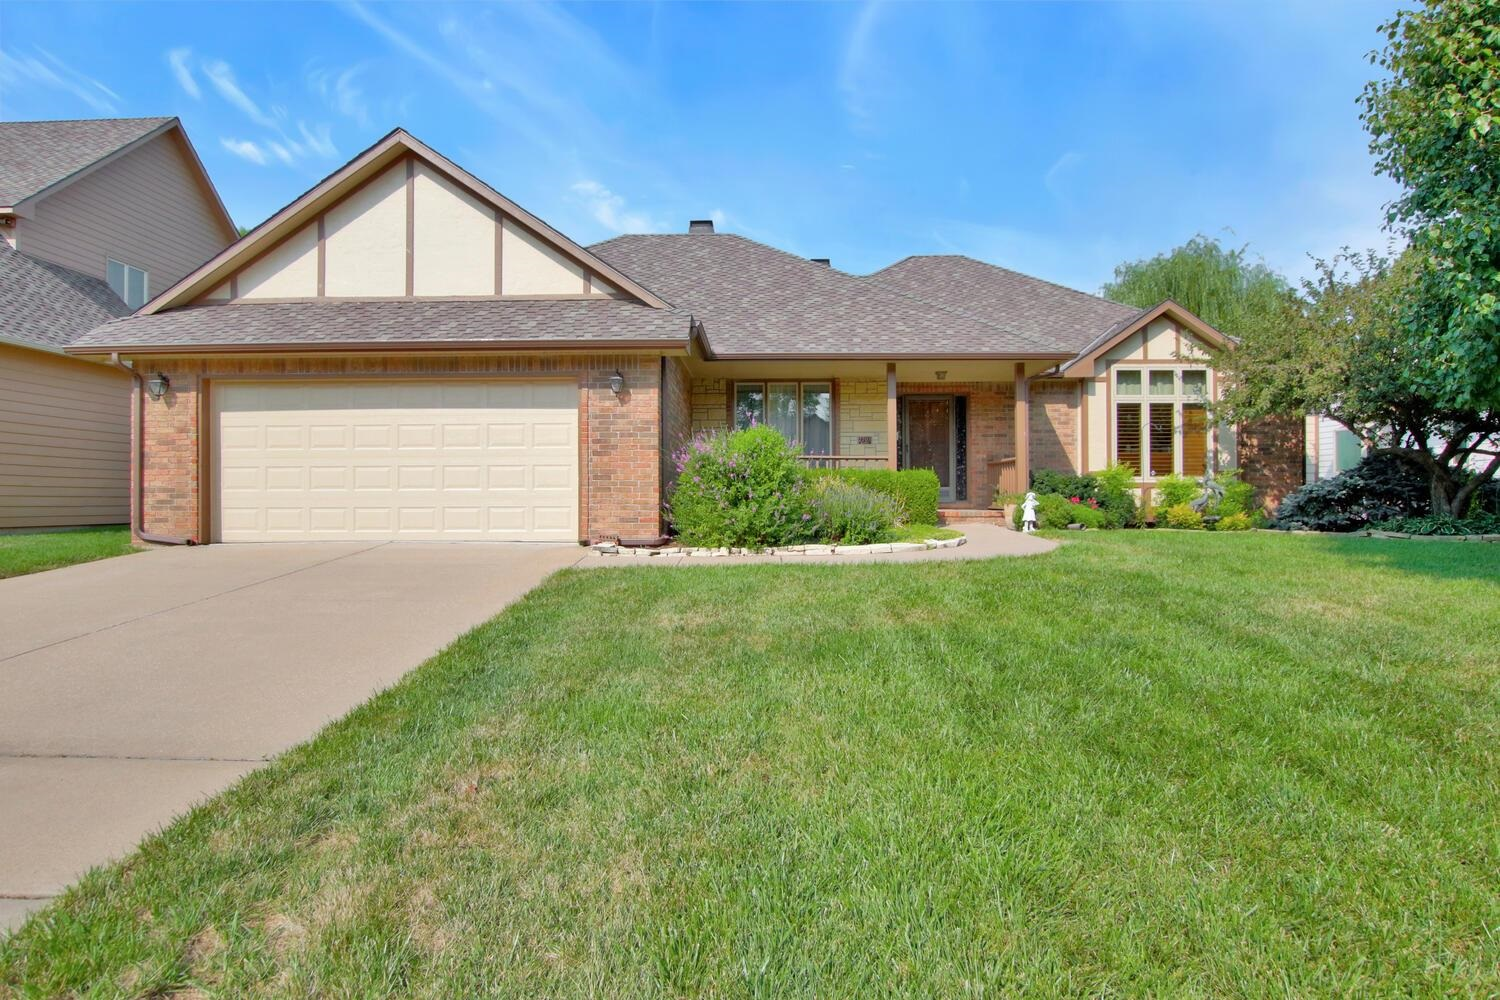 Lovely, open ranch home has been impeccably maintained.  Fantastic wood floors in kitchen, hearth, living room and formal dining area.  The back deck affords two entrances, one through kitchen and the other through the Master bedroom.  Deck is mostly covered and also has roll up blinds to shield from the sun.  Also has high end deck flooring.  Enjoy your cup of coffee and listen to the fountain as you peer out over the neighborhood pond.  Absolutely huge rec room that has a wet bar, gas starter fireplace and walk out/walk up exit.  Sunken patio has room for more entertaining areas.  Two more large bedrooms, two storage areas, with one having an escape window should you need bedroom #5!  Updates include new HVAC in 2020, newer Presidential roof, all window with exception of protected windows in dining and hearth room and MB slider have all been replaced with Pella window.  Beautiful landscaping and fenced in with wrought iron.